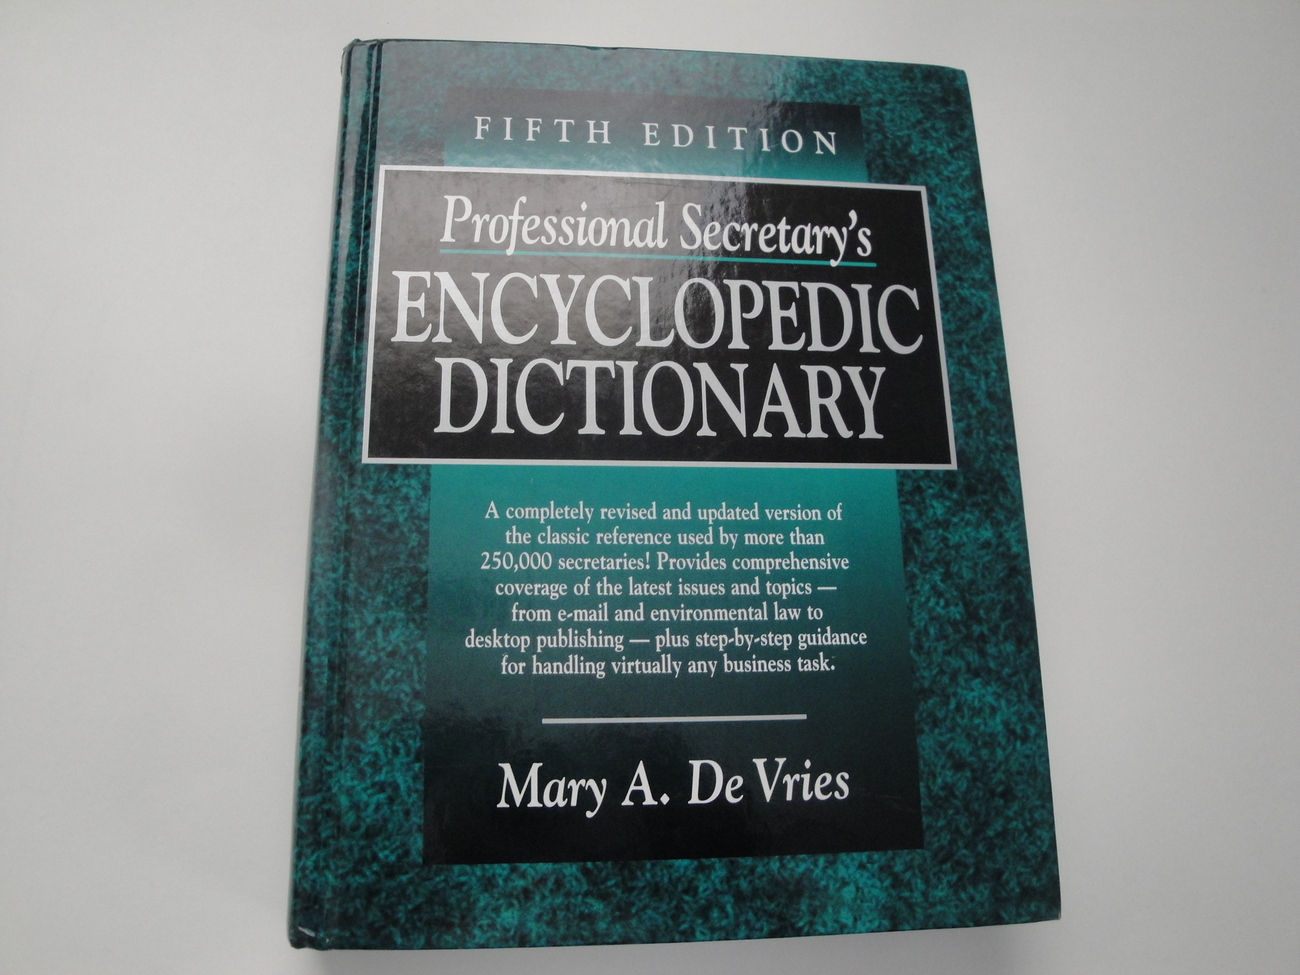 Professional Secretary's Encyclopedic Dictionary 5th Edition